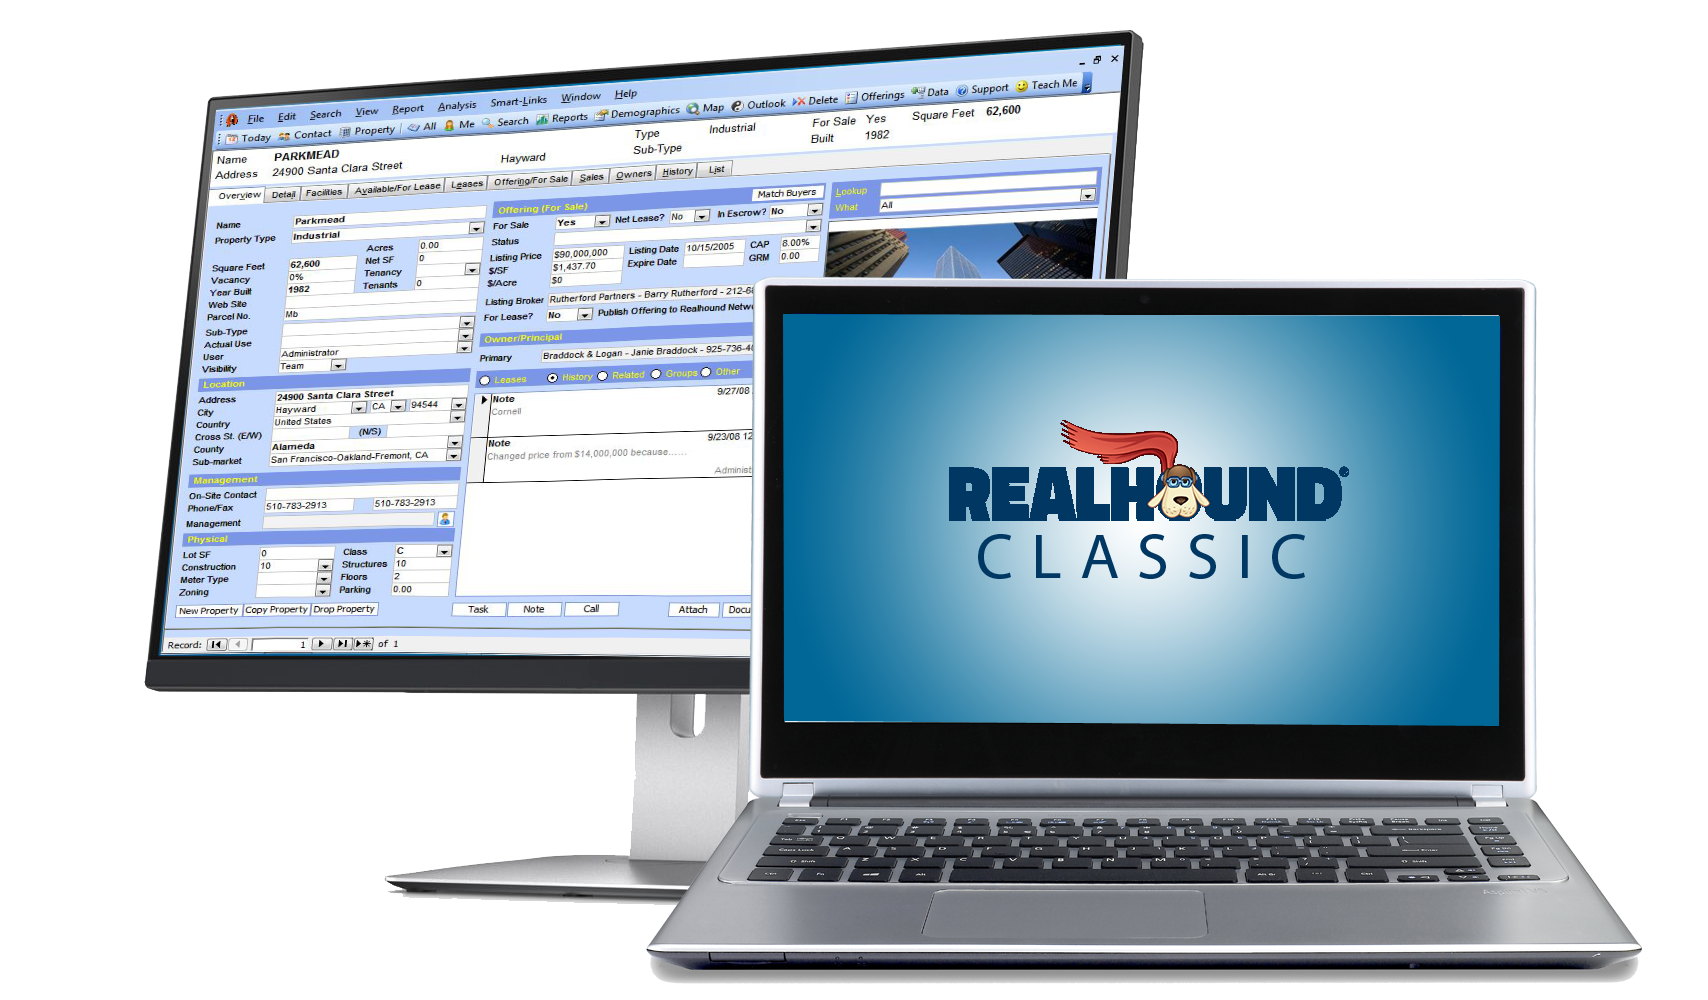 CLASSIC1 Realhound Classic Key Features